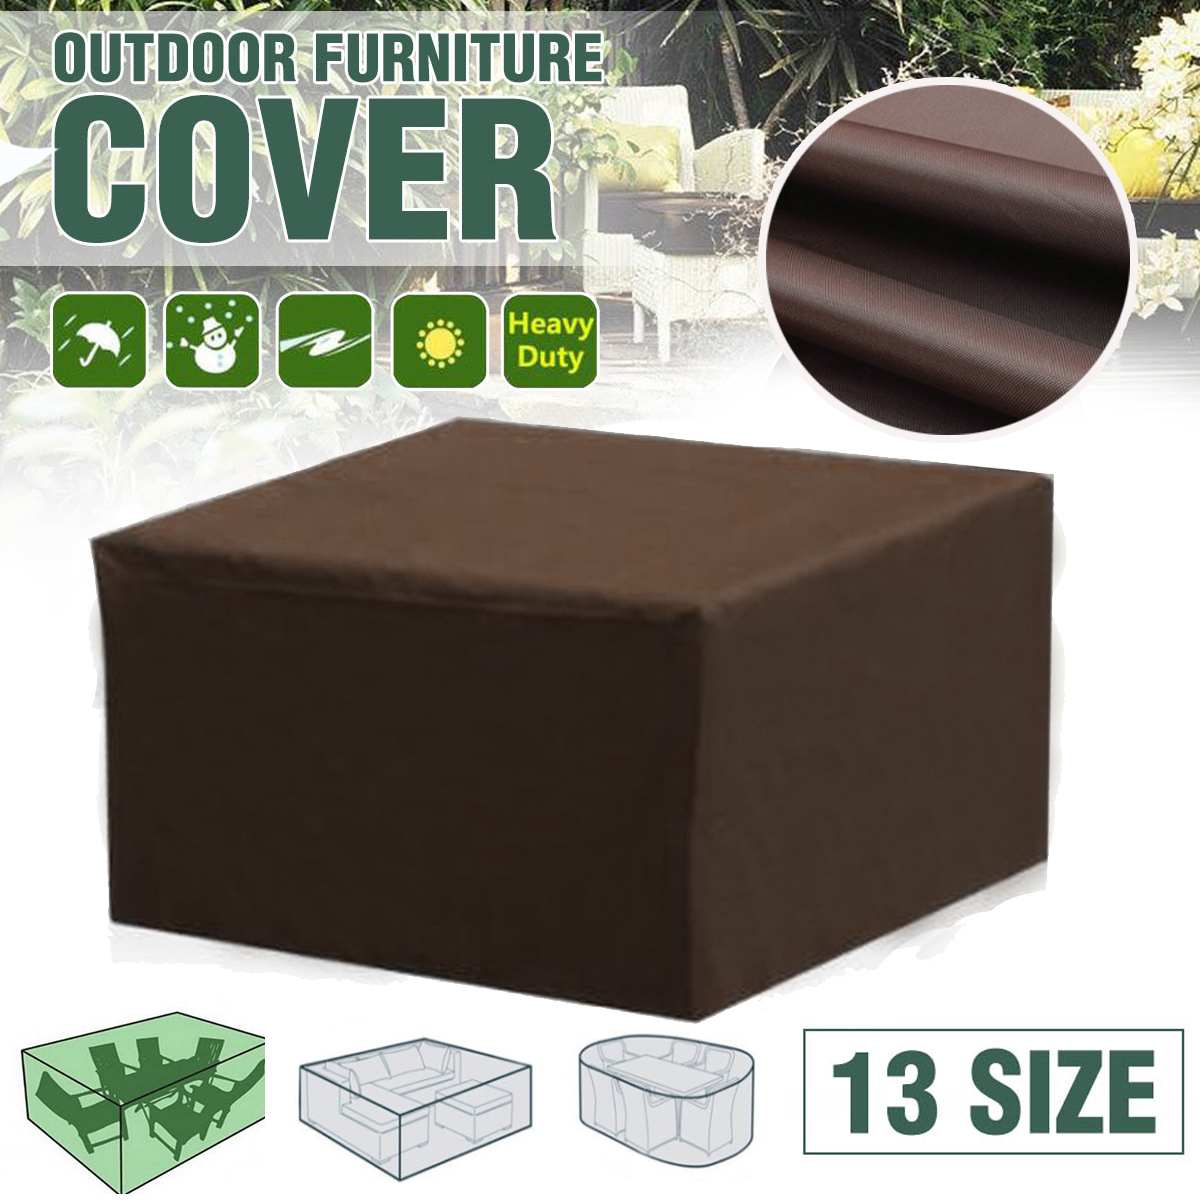 Waterproof Outdoor Garden Furniture Cover Covers For Wicker Sofa Protection Set Table Lounge Patio Rain Snow Dustproof Covers